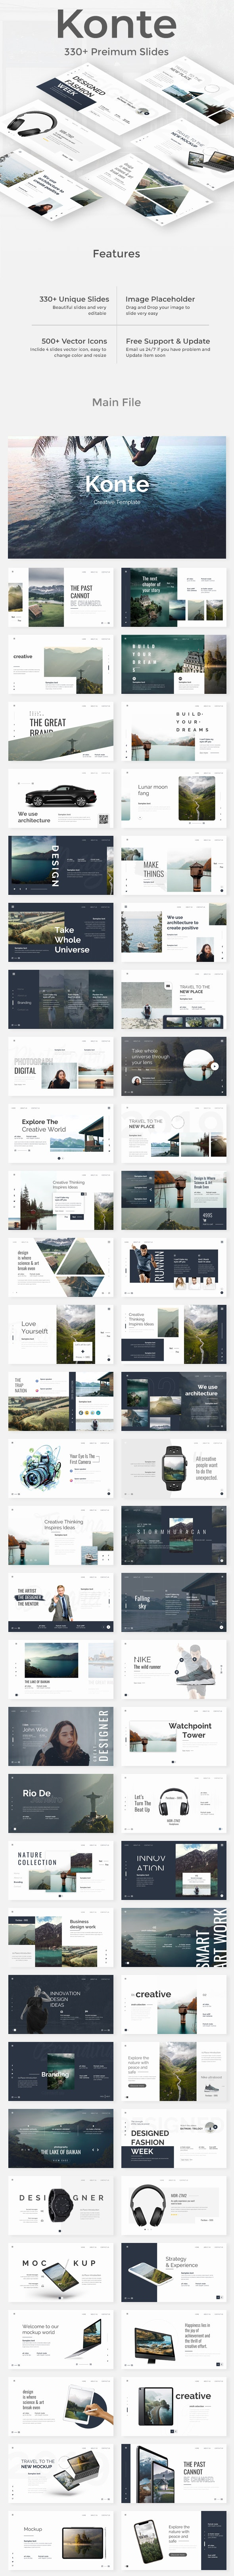 Konte Premium Powerpoint Template - Creative PowerPoint Templates